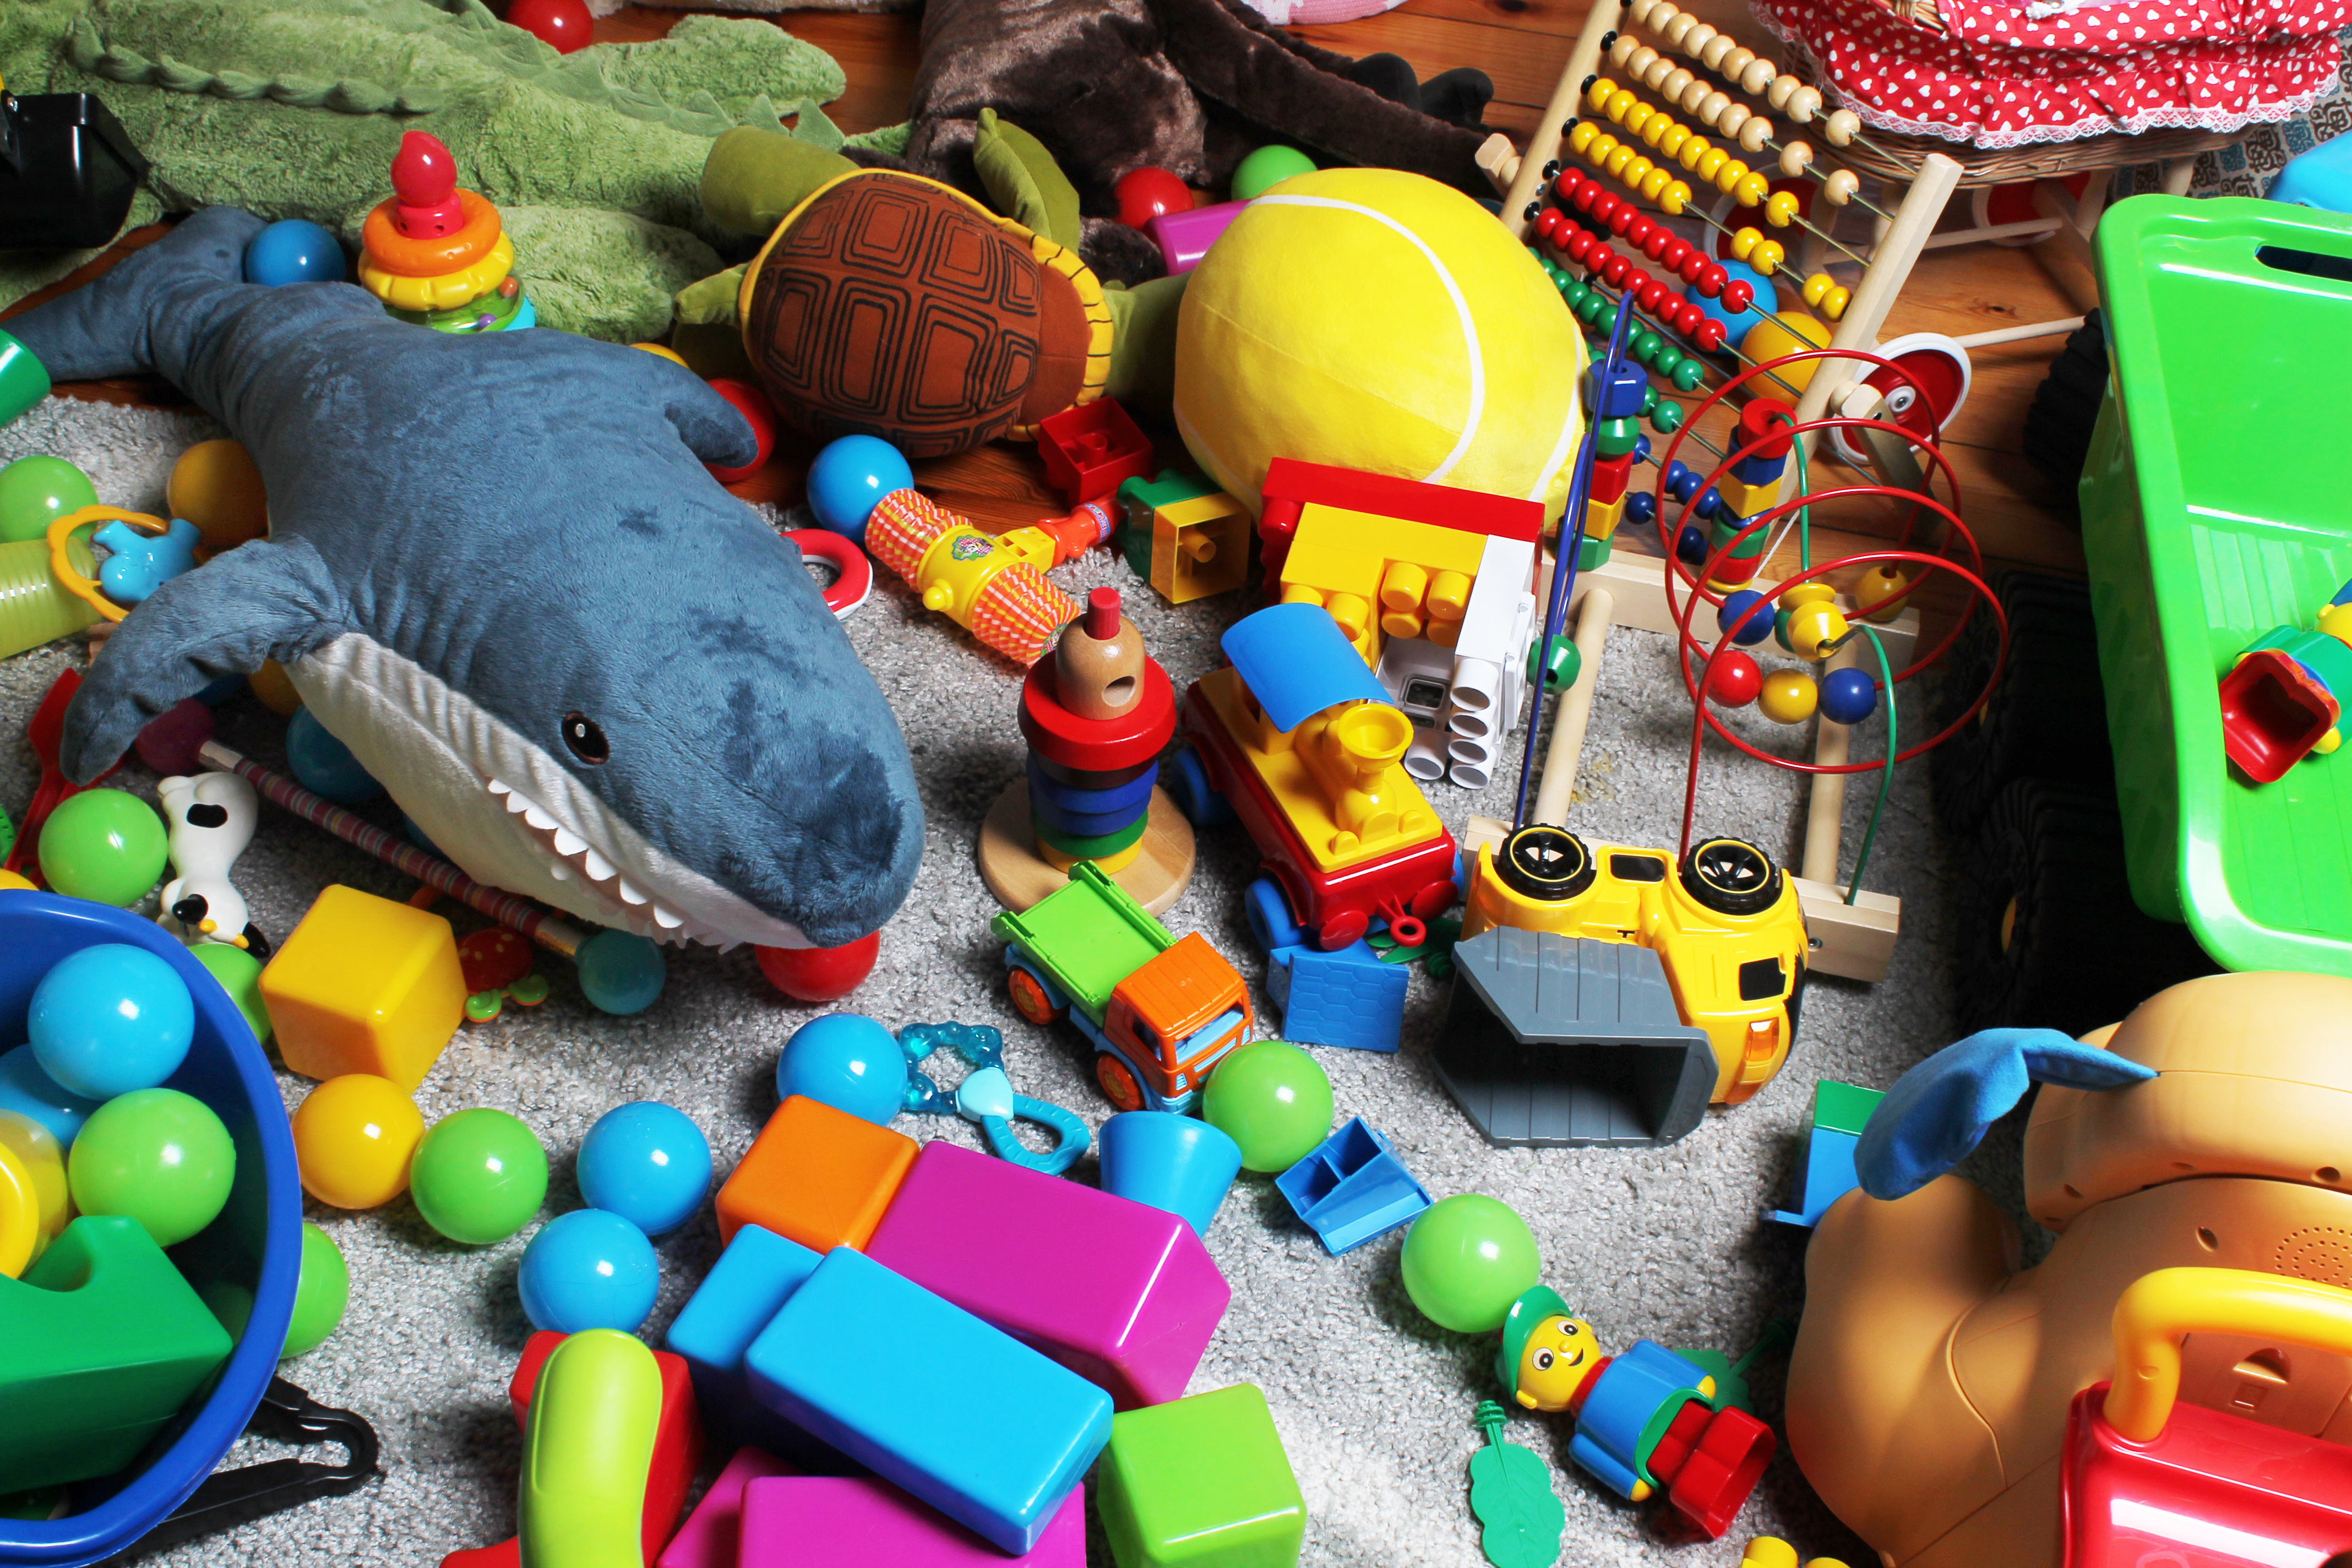 Toy-Related Eye Injuries: Toys to Avoid to Keep Your Child ...